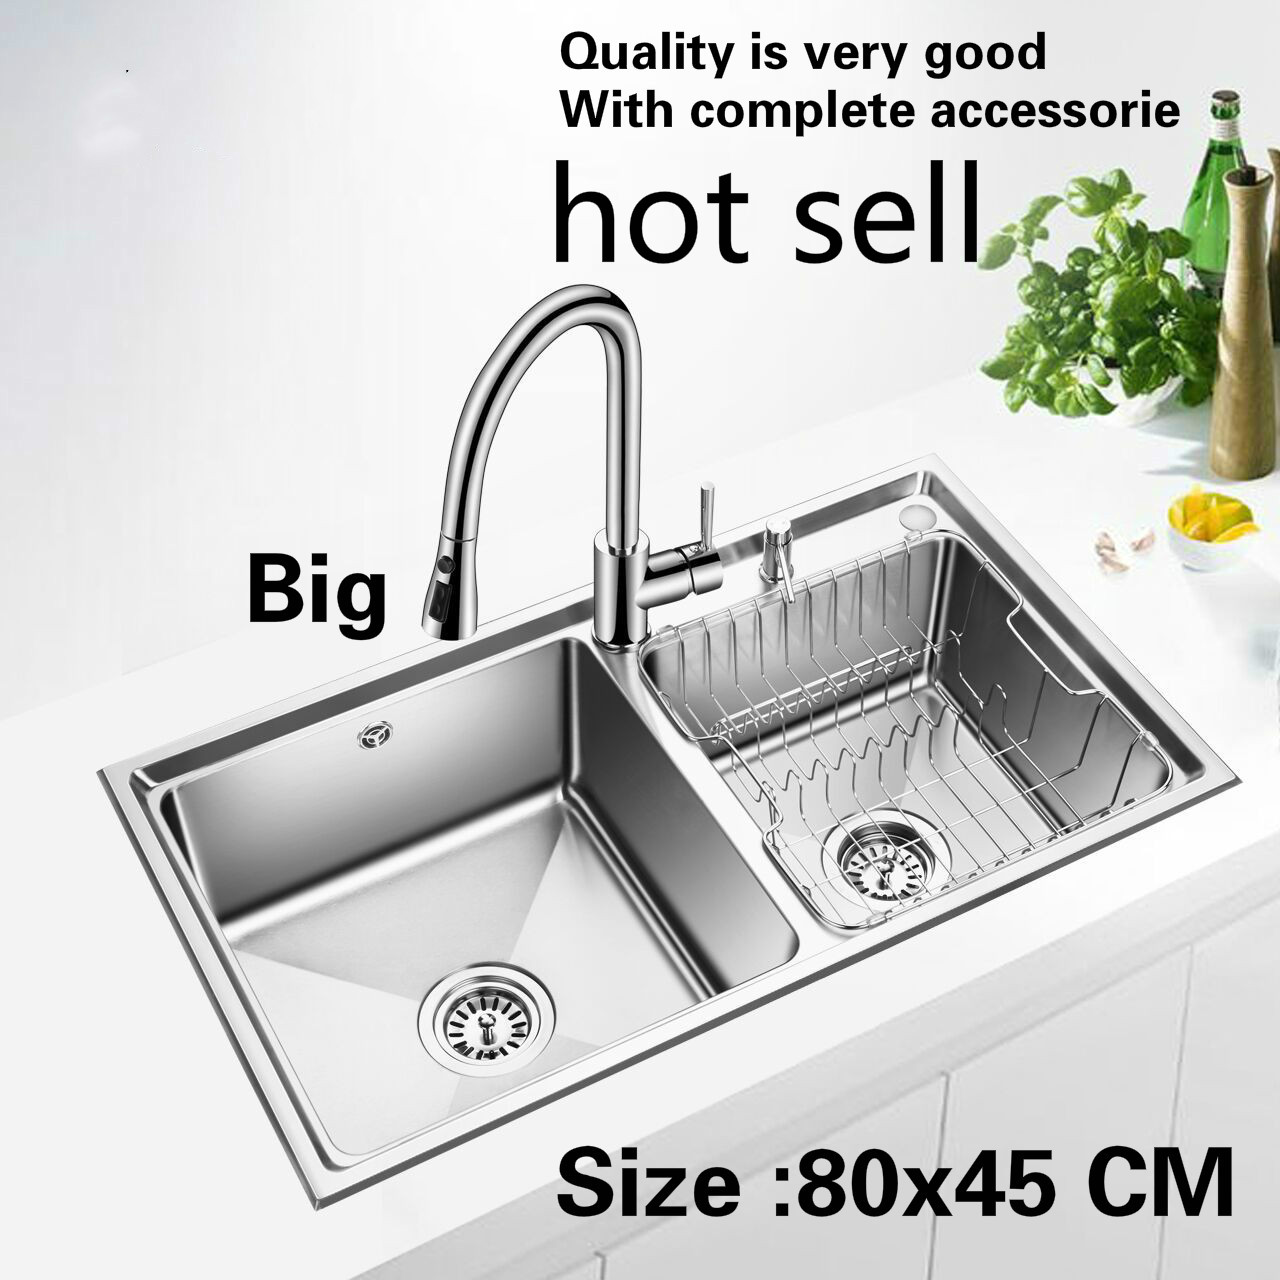 Free shipping Household big kitchen double groove sink durable 304 stainless steel hot sell 800x450 MMFree shipping Household big kitchen double groove sink durable 304 stainless steel hot sell 800x450 MM